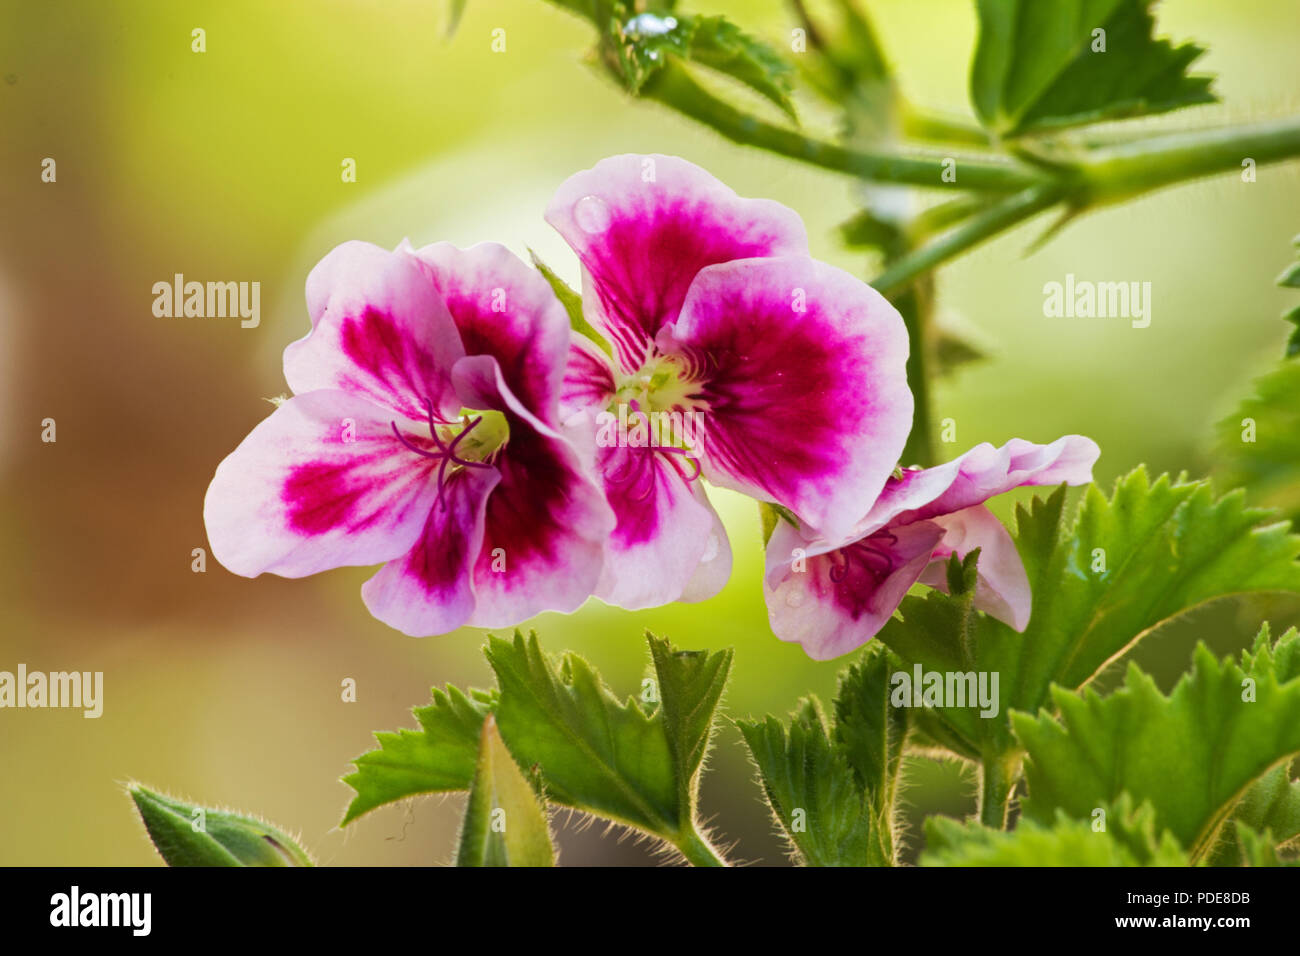 Pelargonium orsett plant and flower on natural background Stock Photo